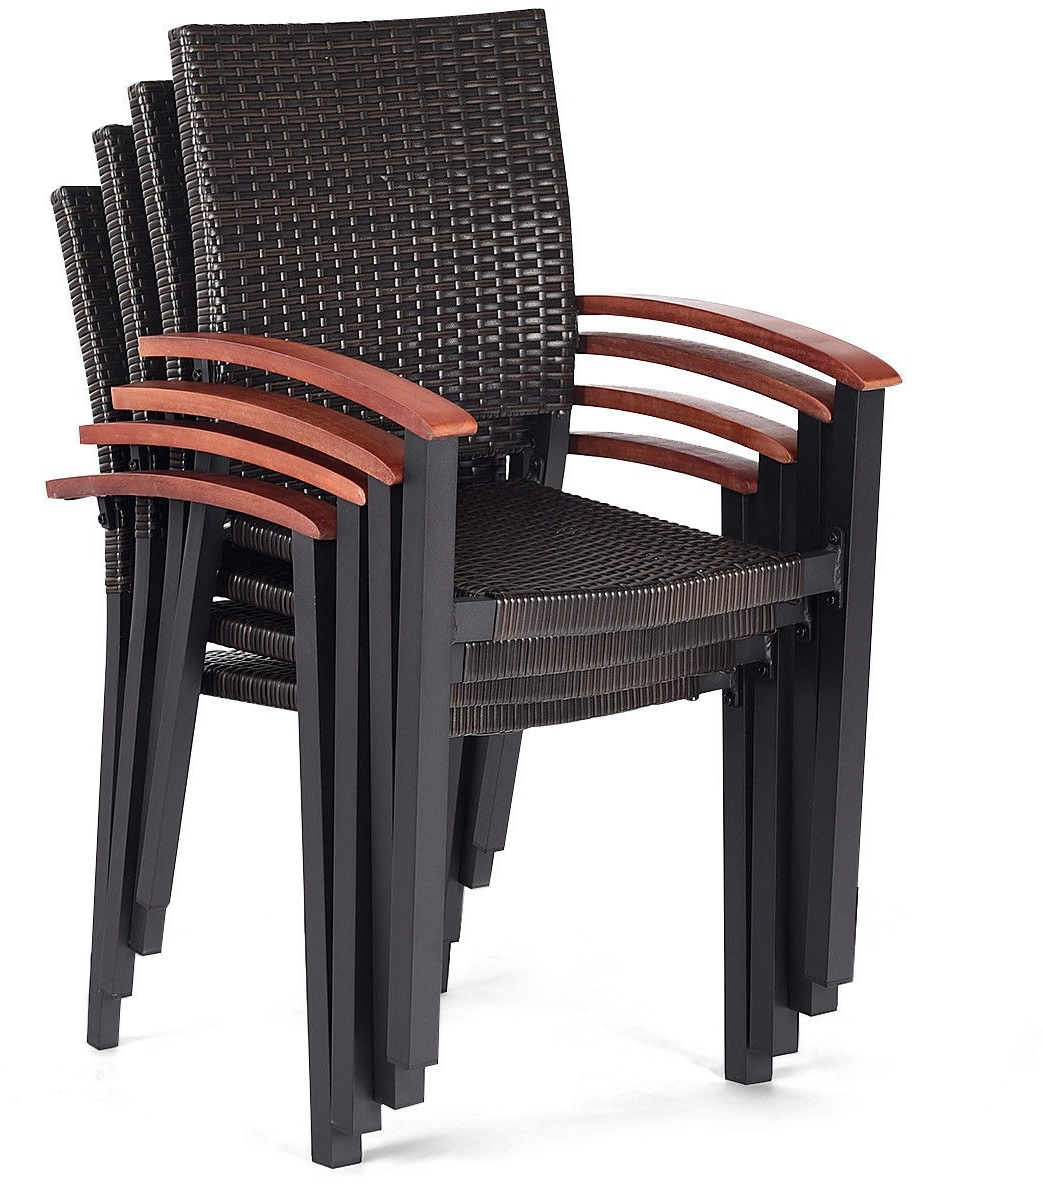 Details About Patio Rattan Armchair Set 4 Pc Dining Chairs Stackable Wicker Outdoor Furniture